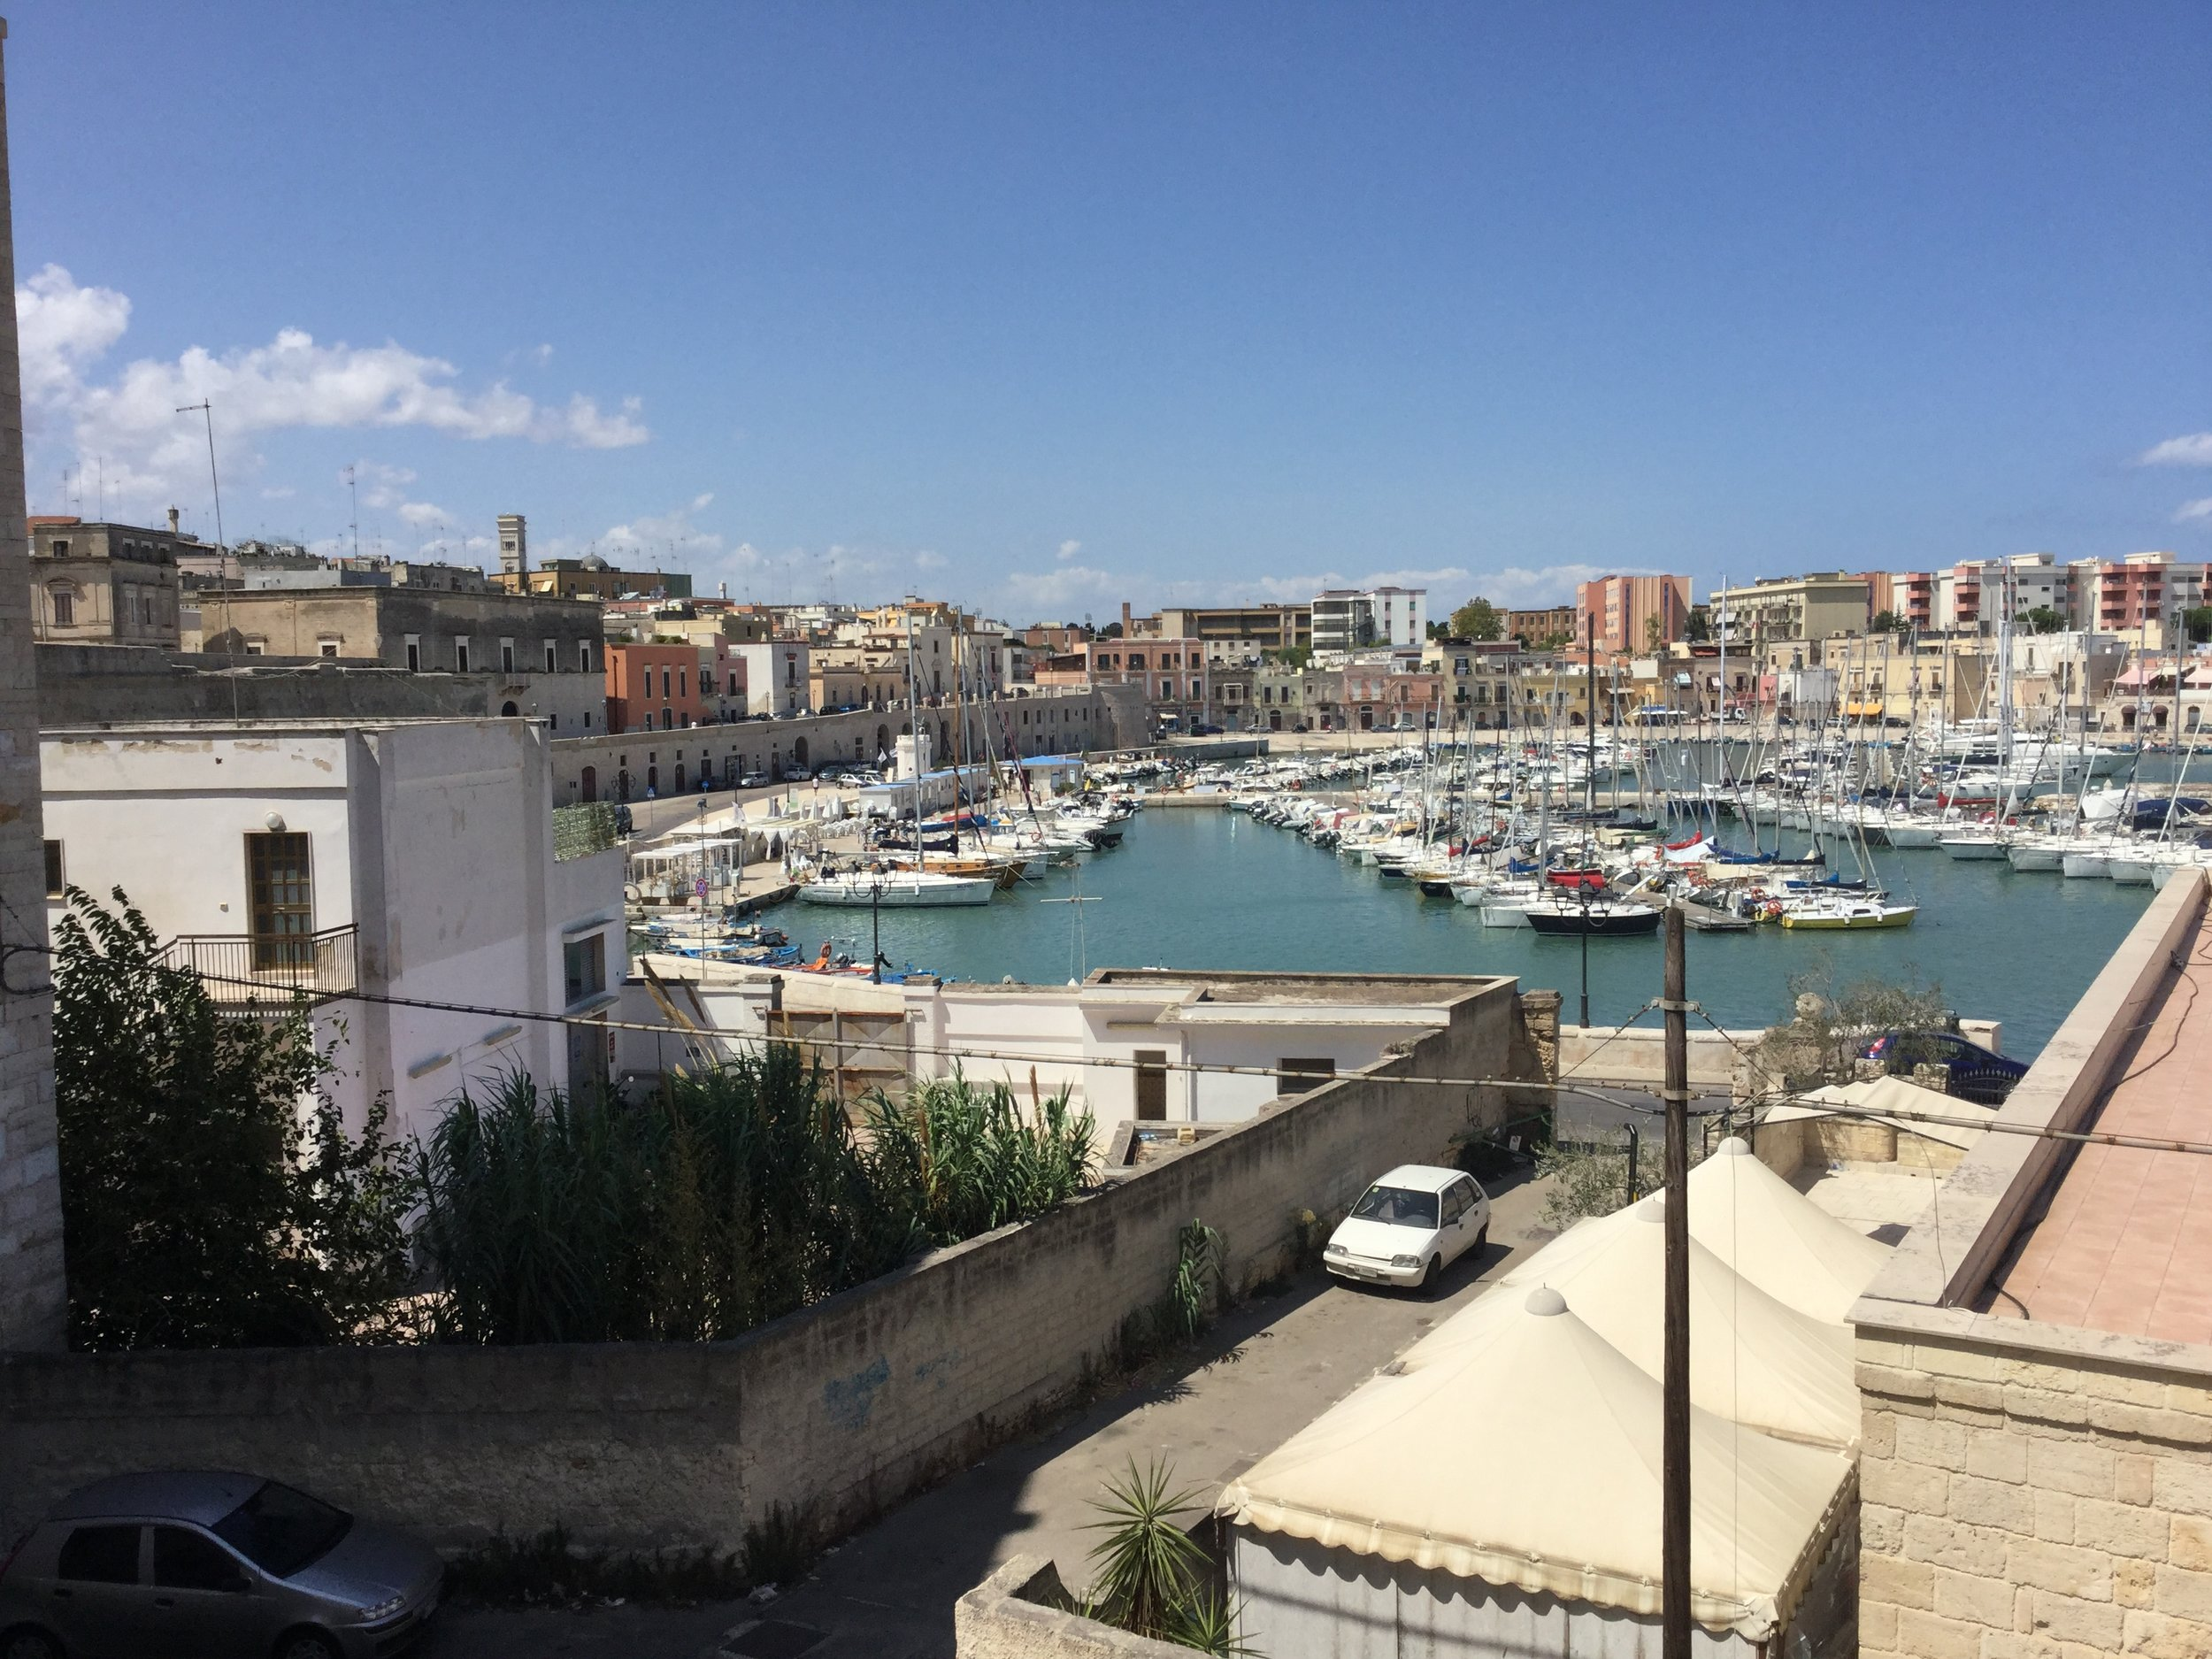 This is th center harbor of Bisceglie. We live in Palazzo Ammazzalorsa, the big building with five white windows next to the pink building under the tower on the left.